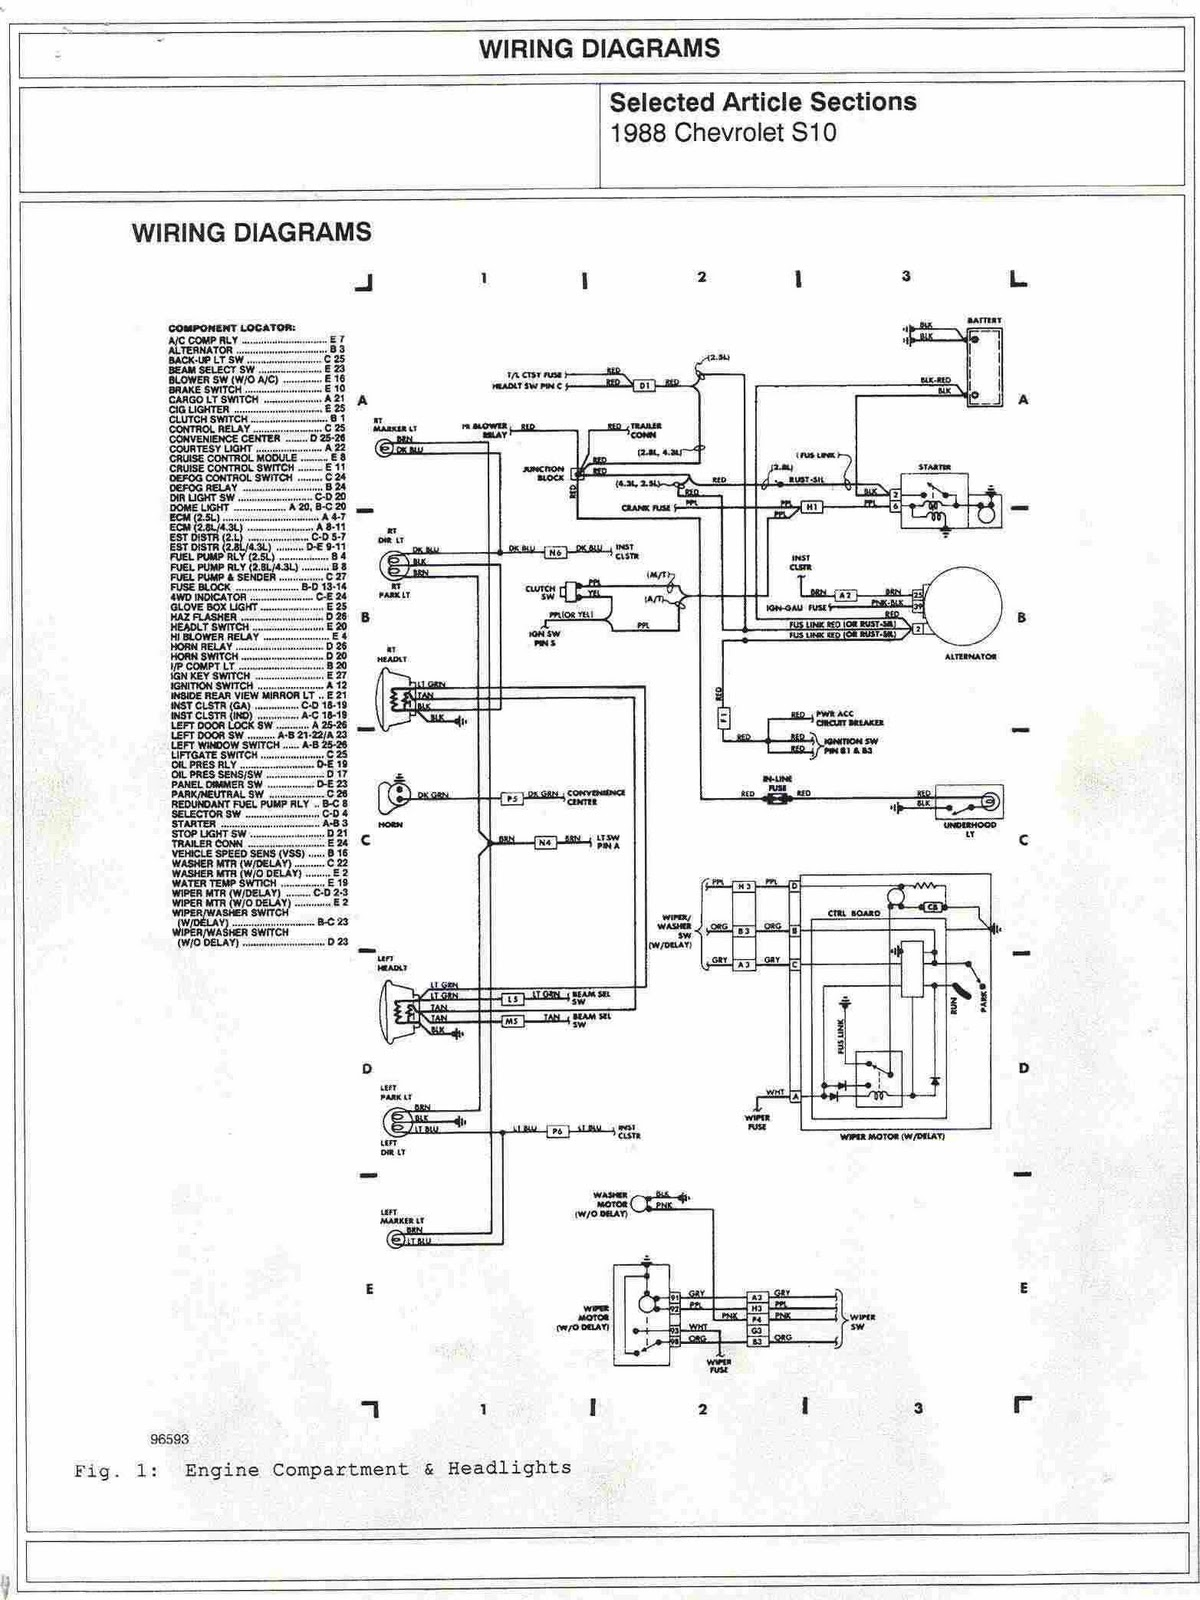 1988+Chevrolet+S10+Engine+Compartment+and+Headlights+Wiring+Diagrams 95 s10 wiring diagram 95 tahoe wiring diagram \u2022 wiring diagrams Control Panel Electrical Wiring Basics at soozxer.org